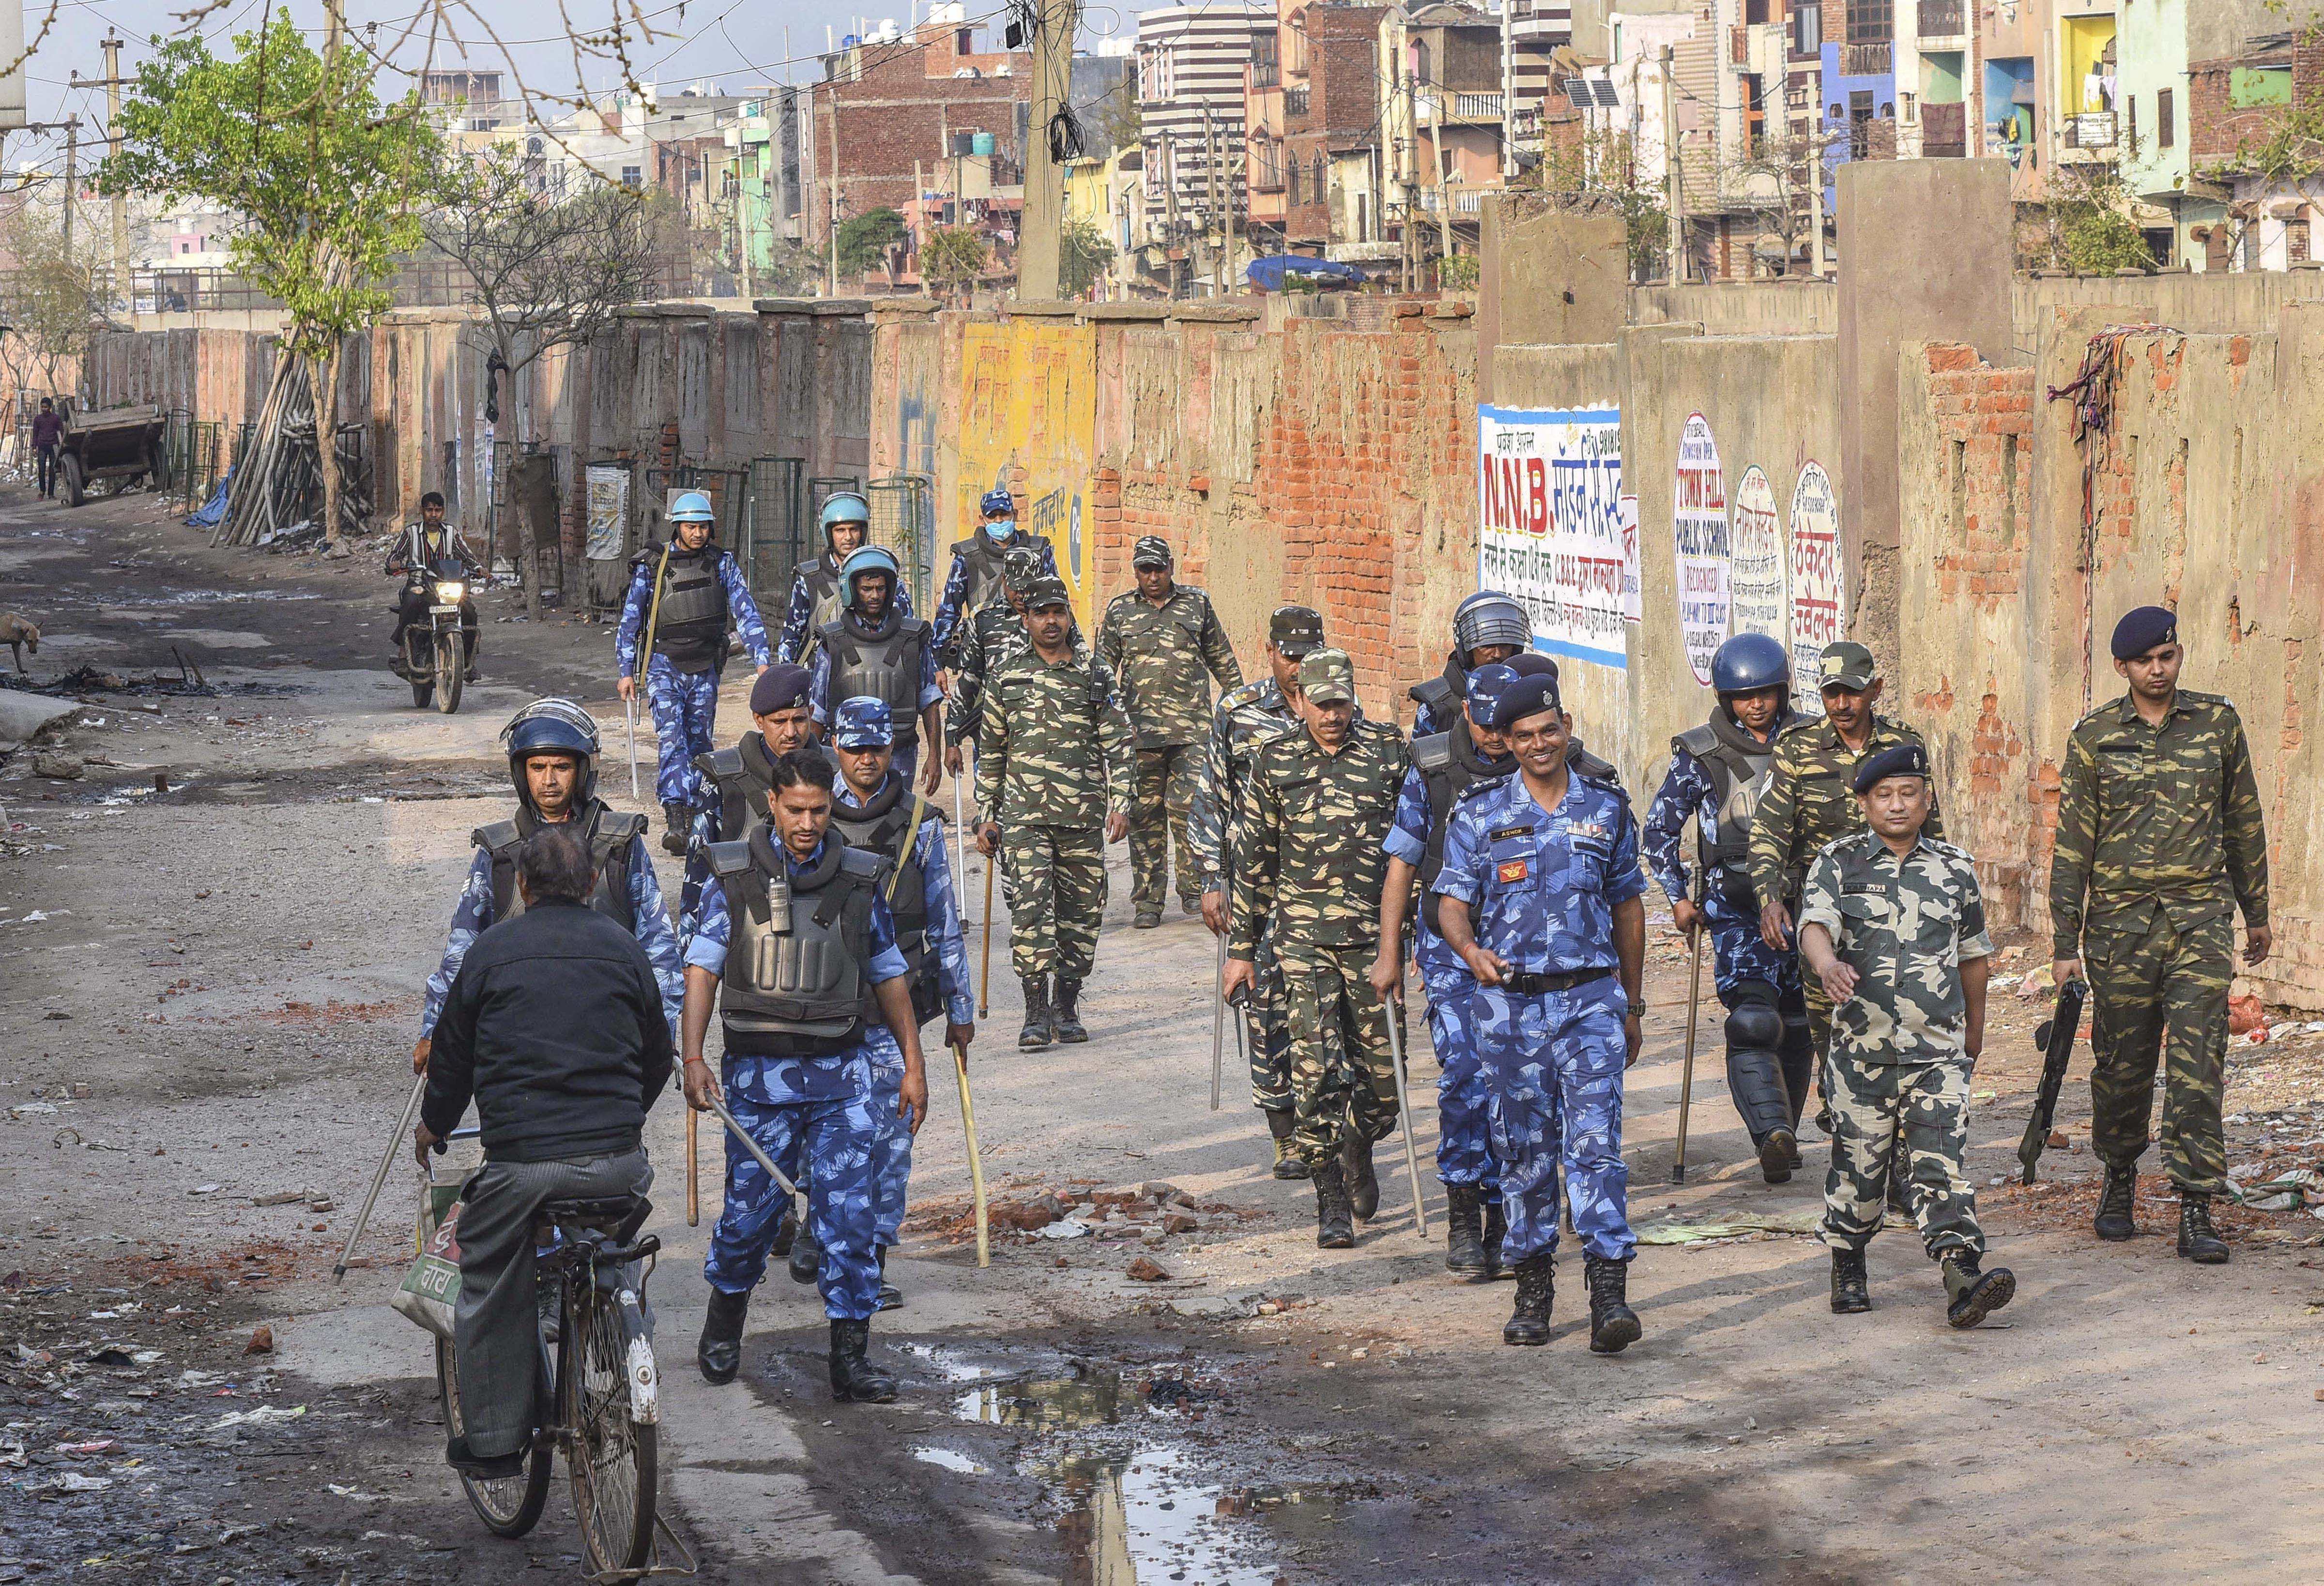 Security personnel patrol a violence-affected area of North East Delhi on Sunday.